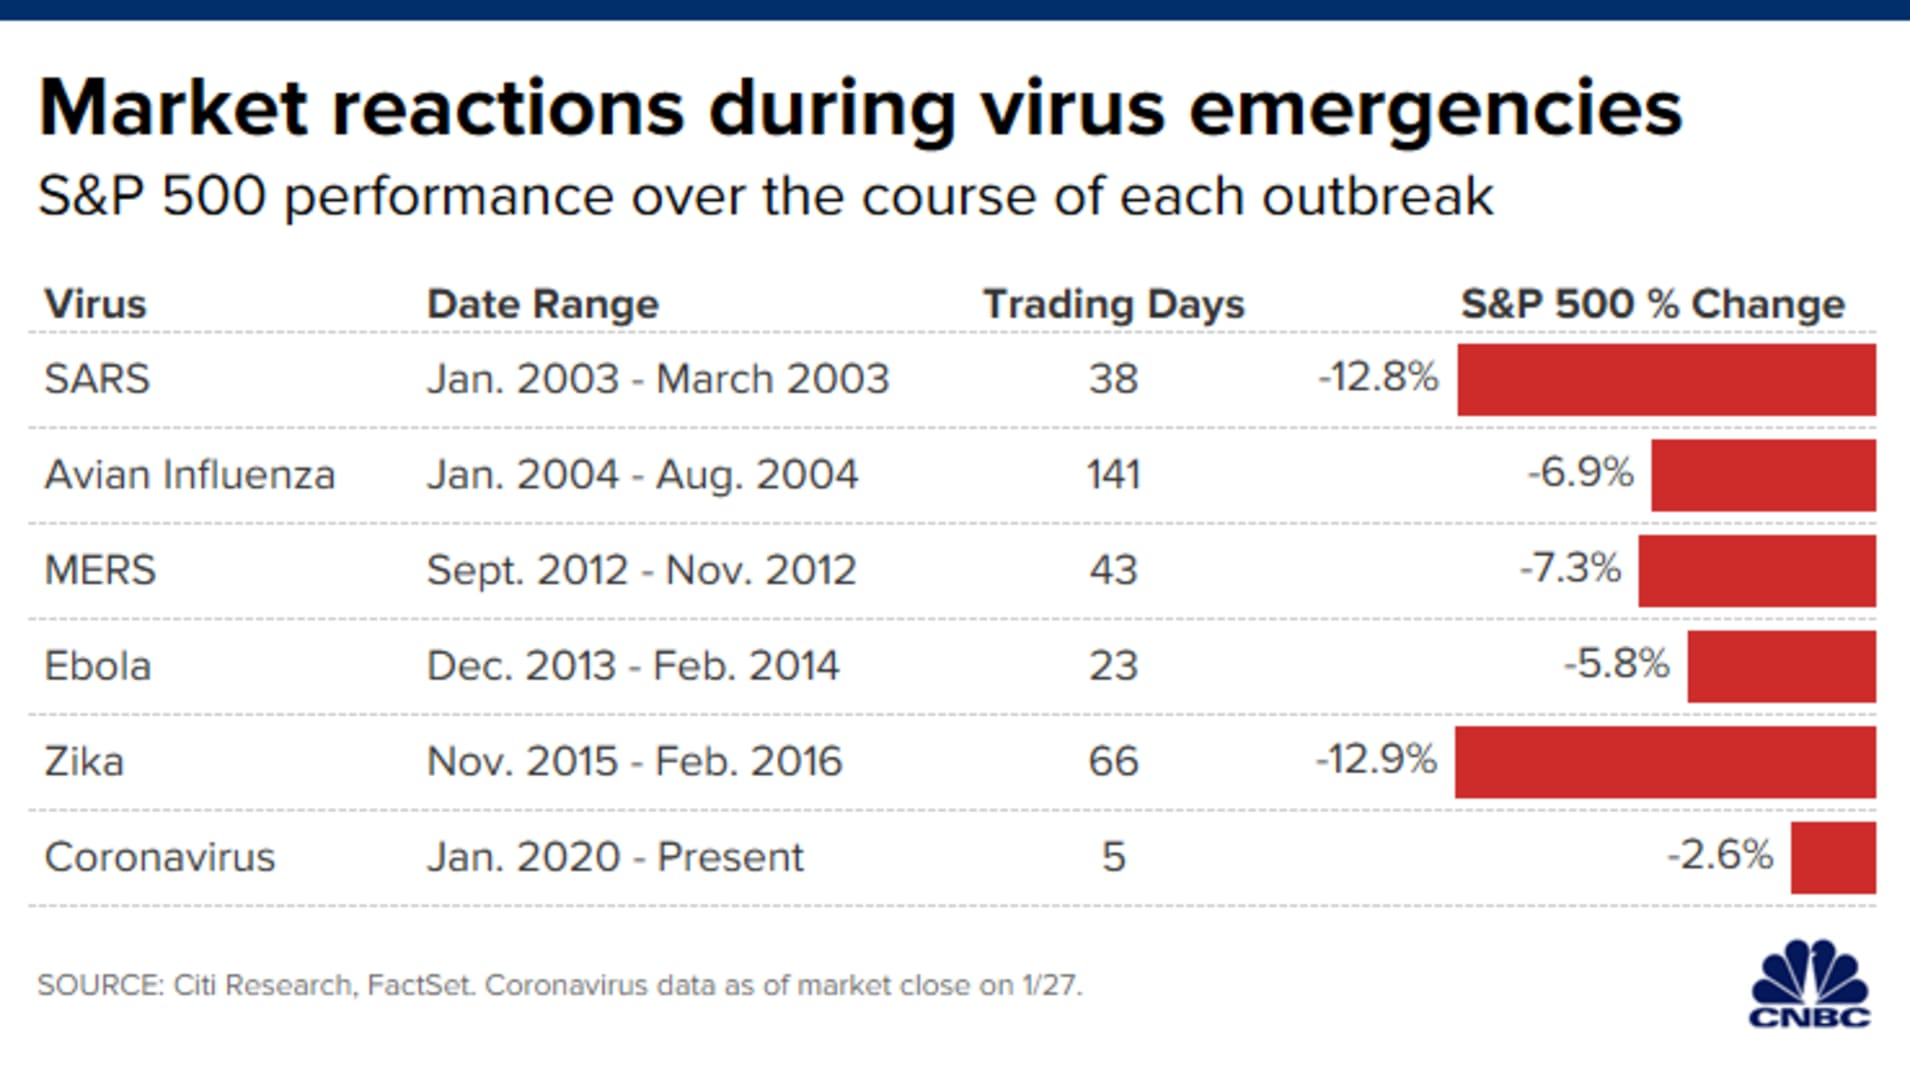 CH 20200128_market_reactions_virus_emergencies.png